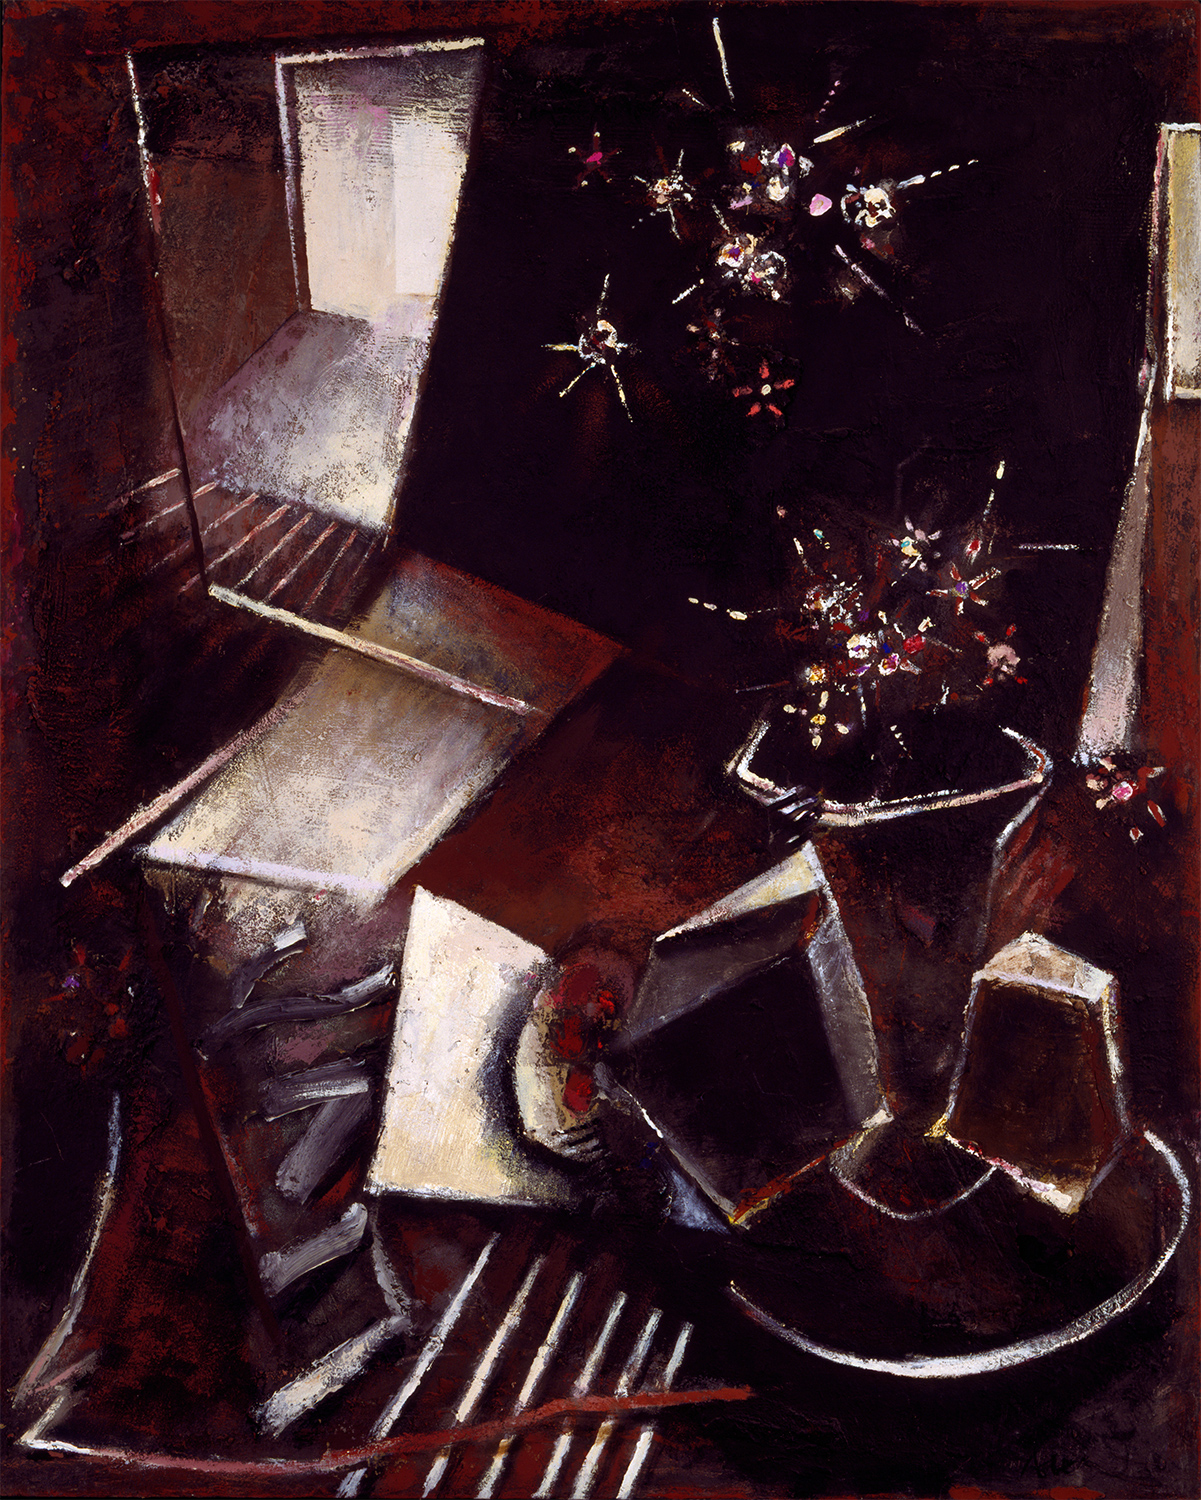 Night Flowers  1985-1993, 153 x 122 cm